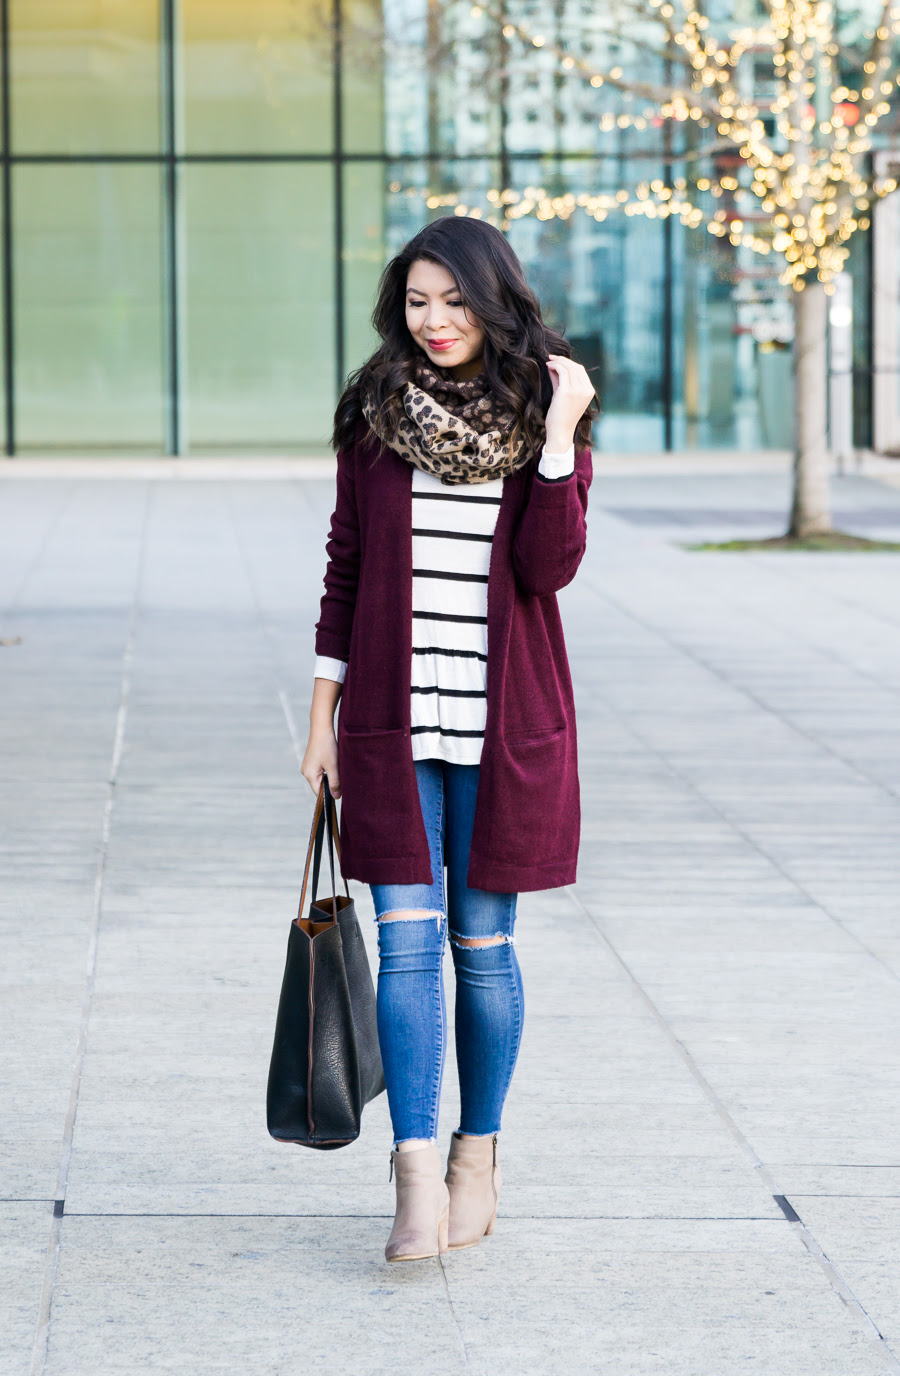 burgundy cardigan outfit  2017 new year's blog